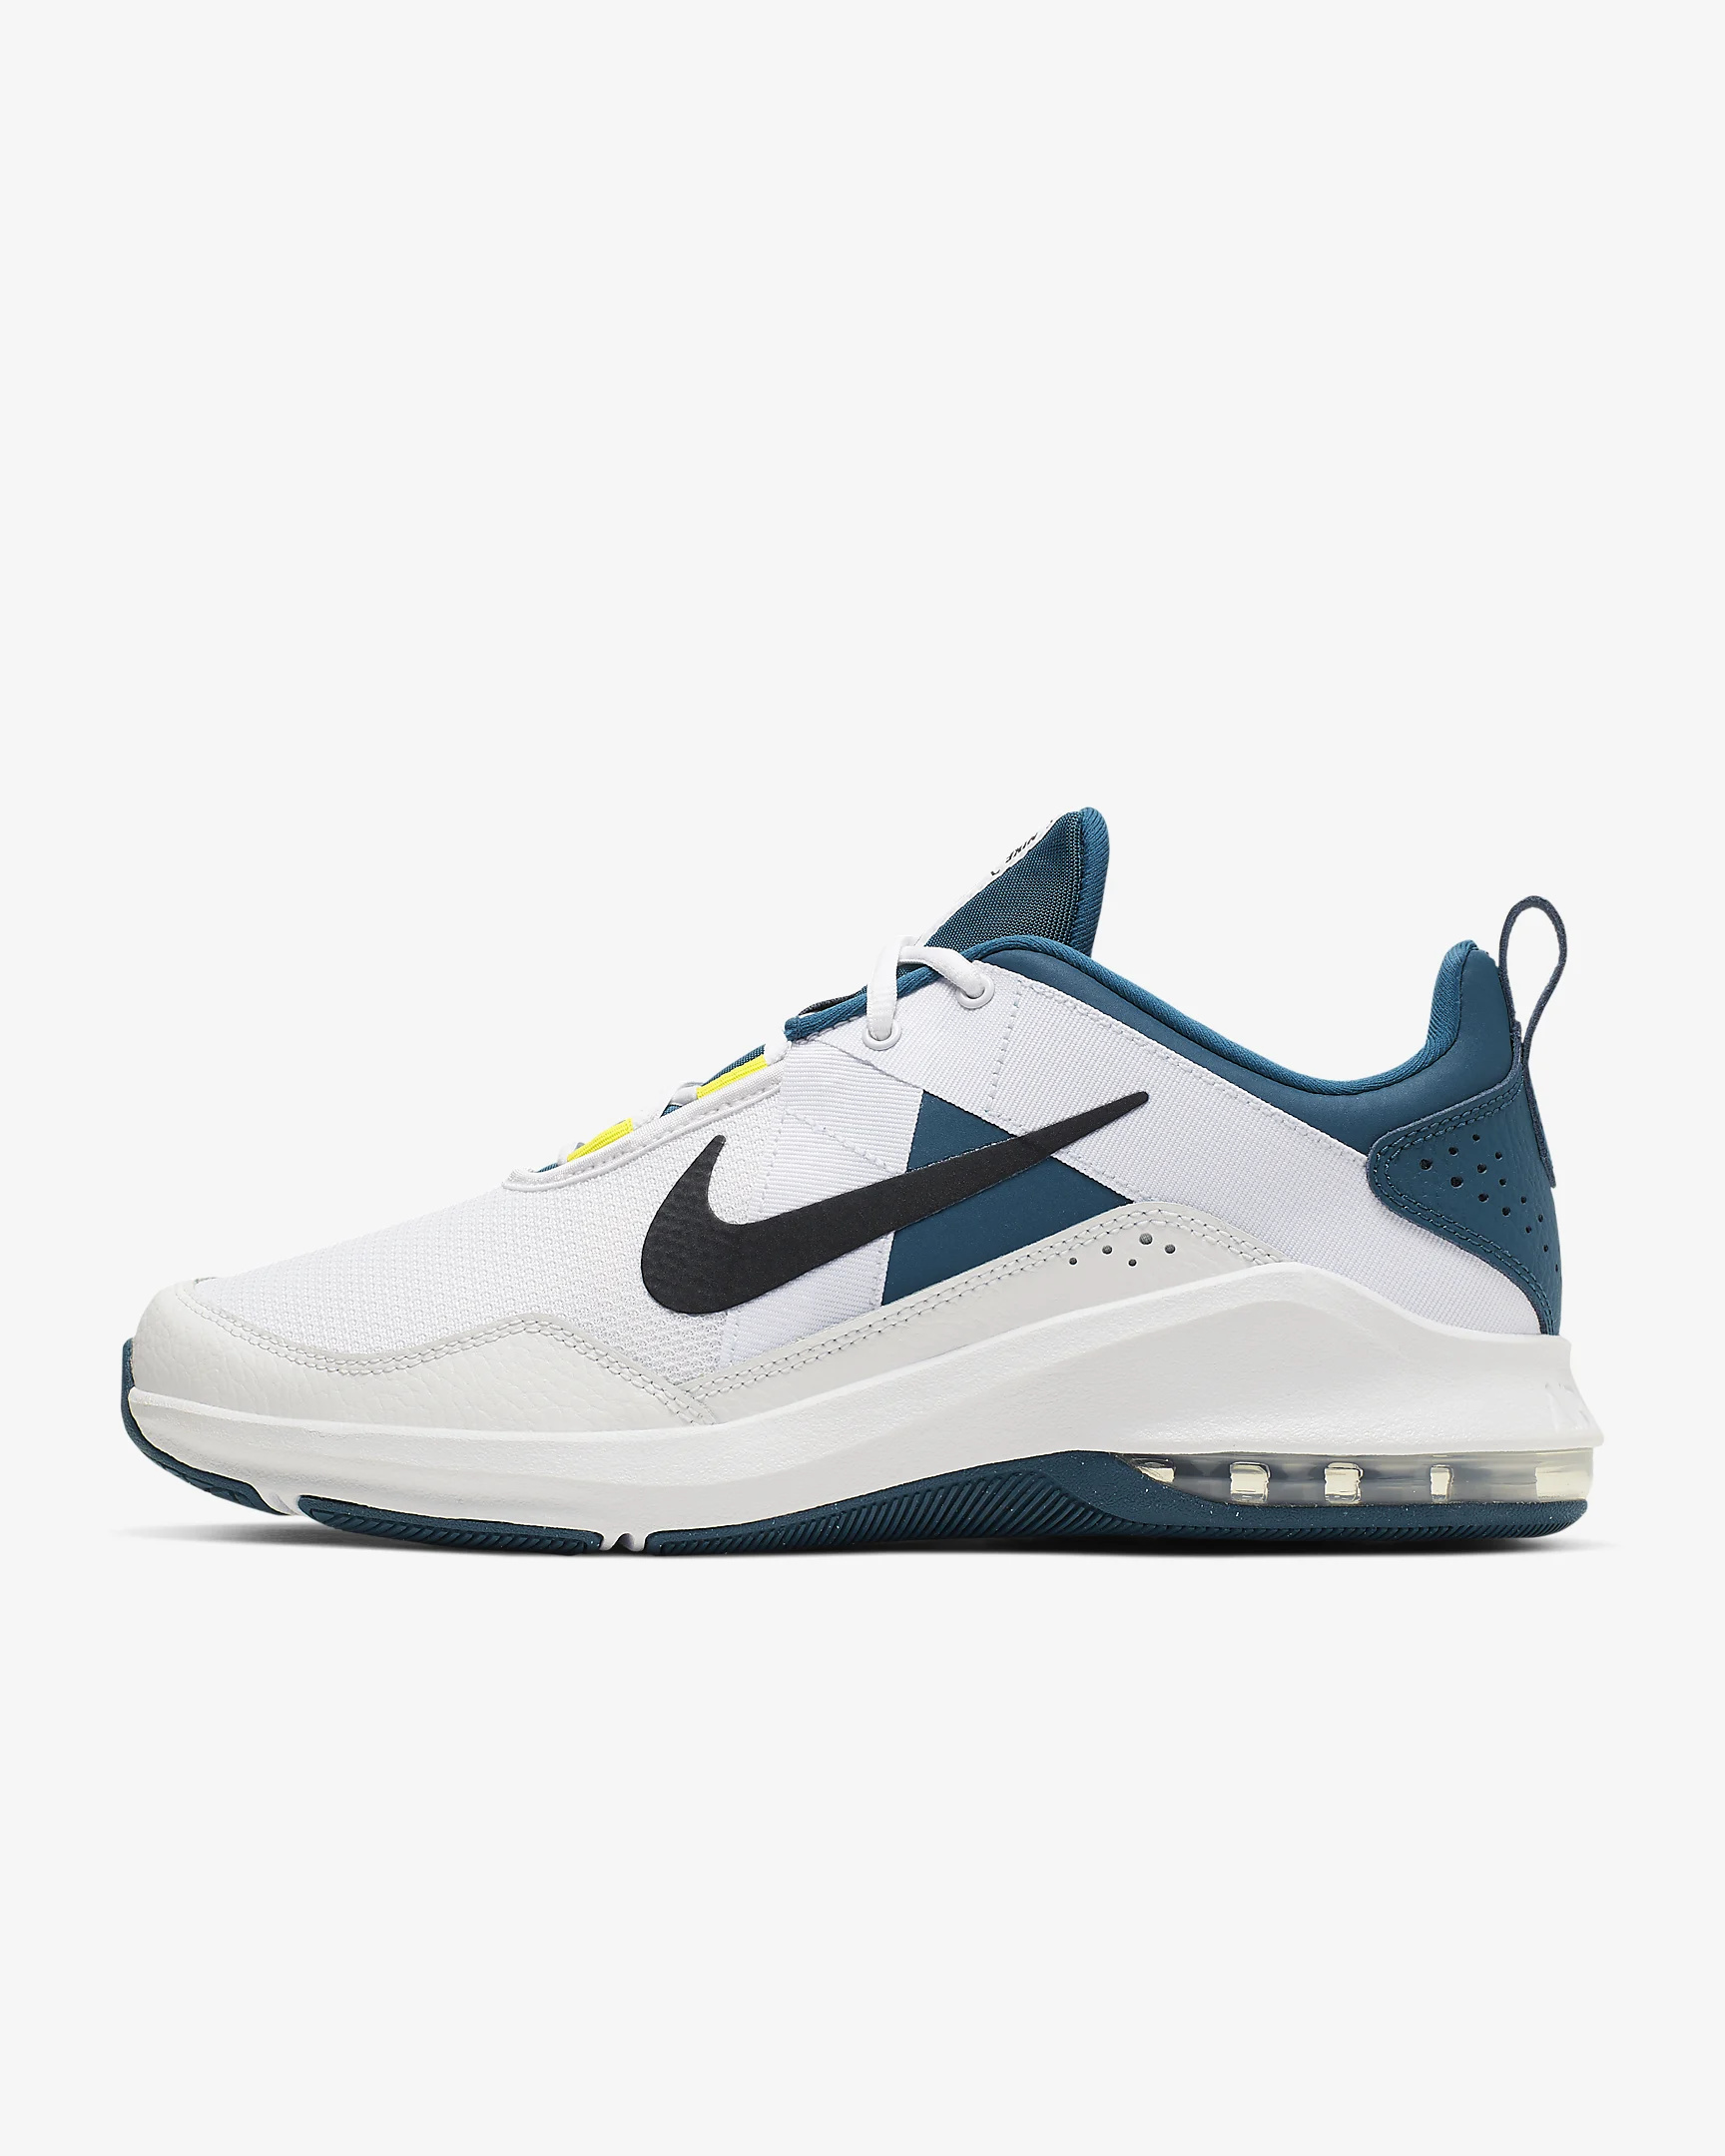 Nike Air Max Alpha Trainer 2 Free Delivery – £48.47 on Nike Store